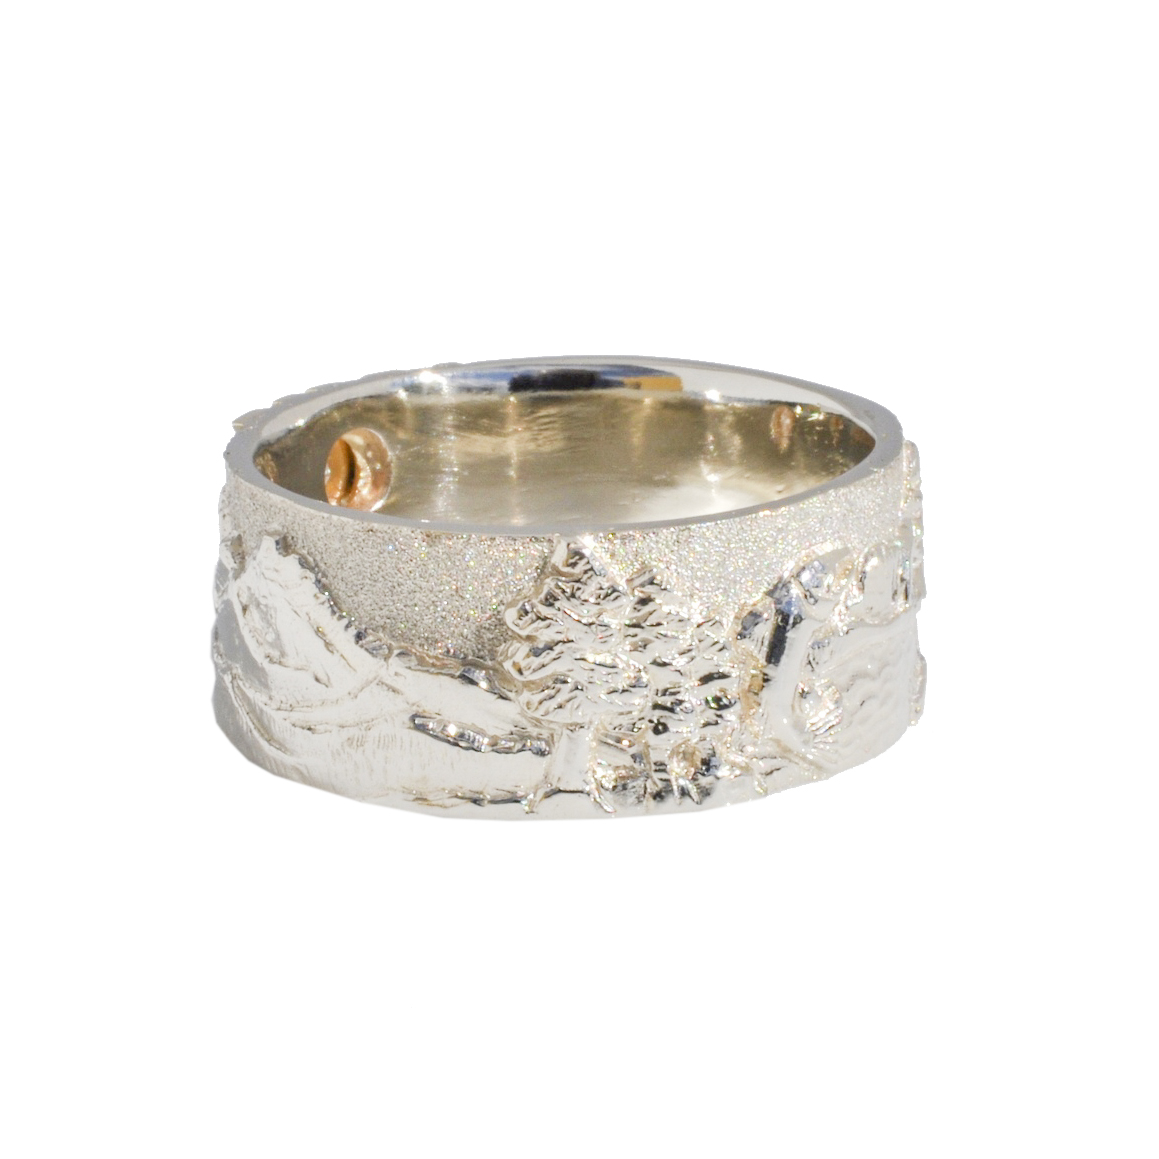 Cascade Mountain Landscape Ring 18k gold, 14k white gold, and .33 carat round brilliant diamond